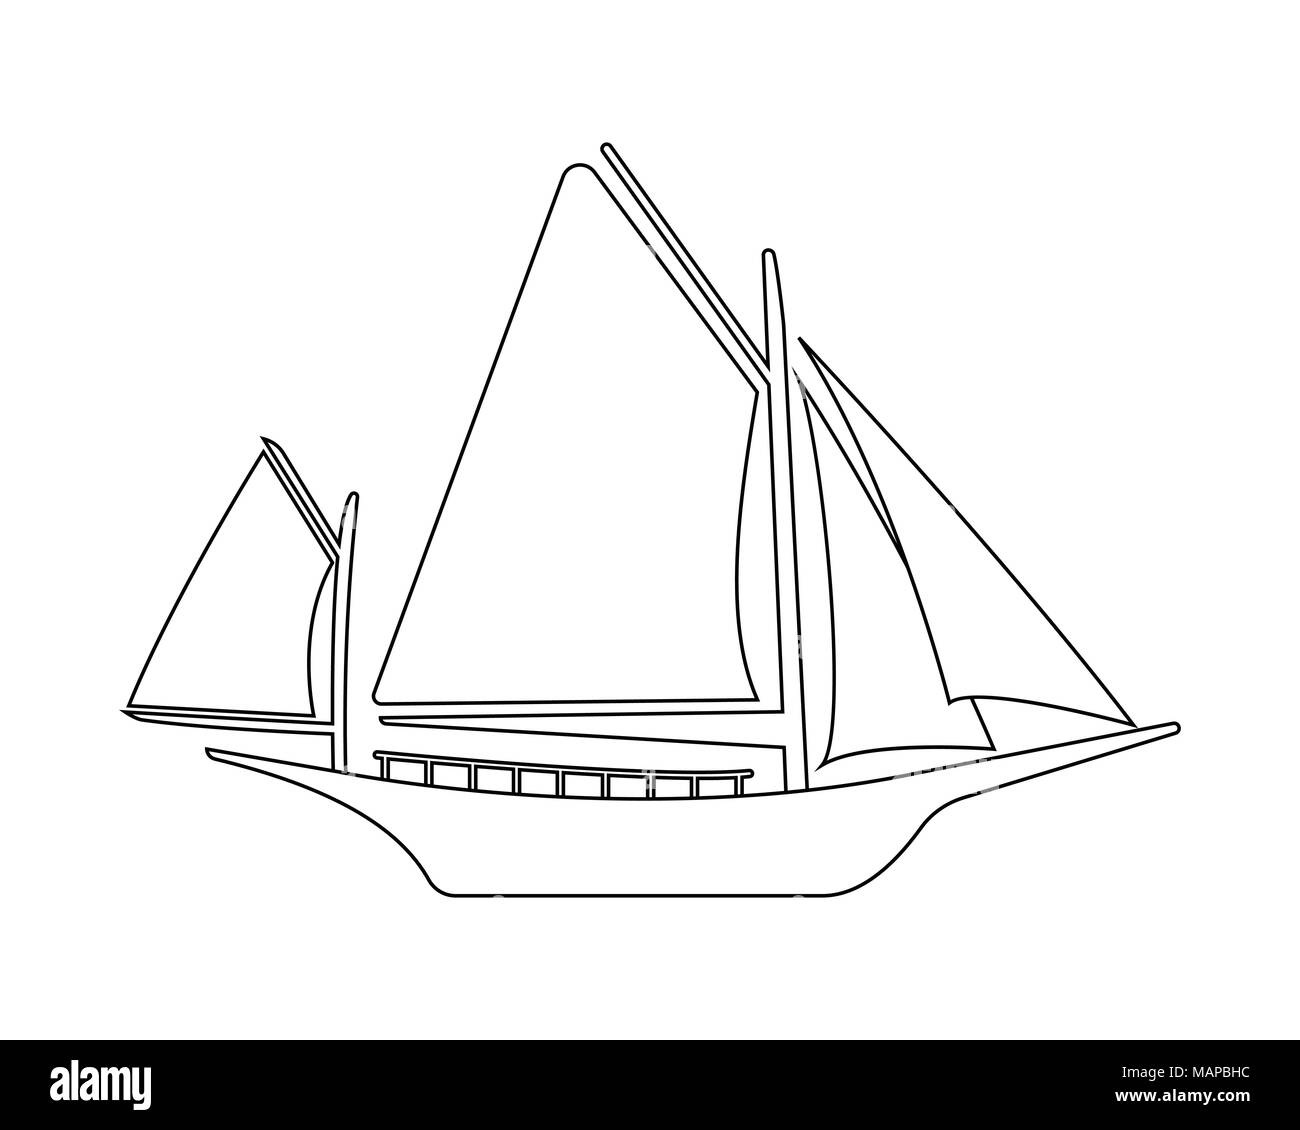 Boat flat icon and logo. Outline Vector illustration. - Stock Vector